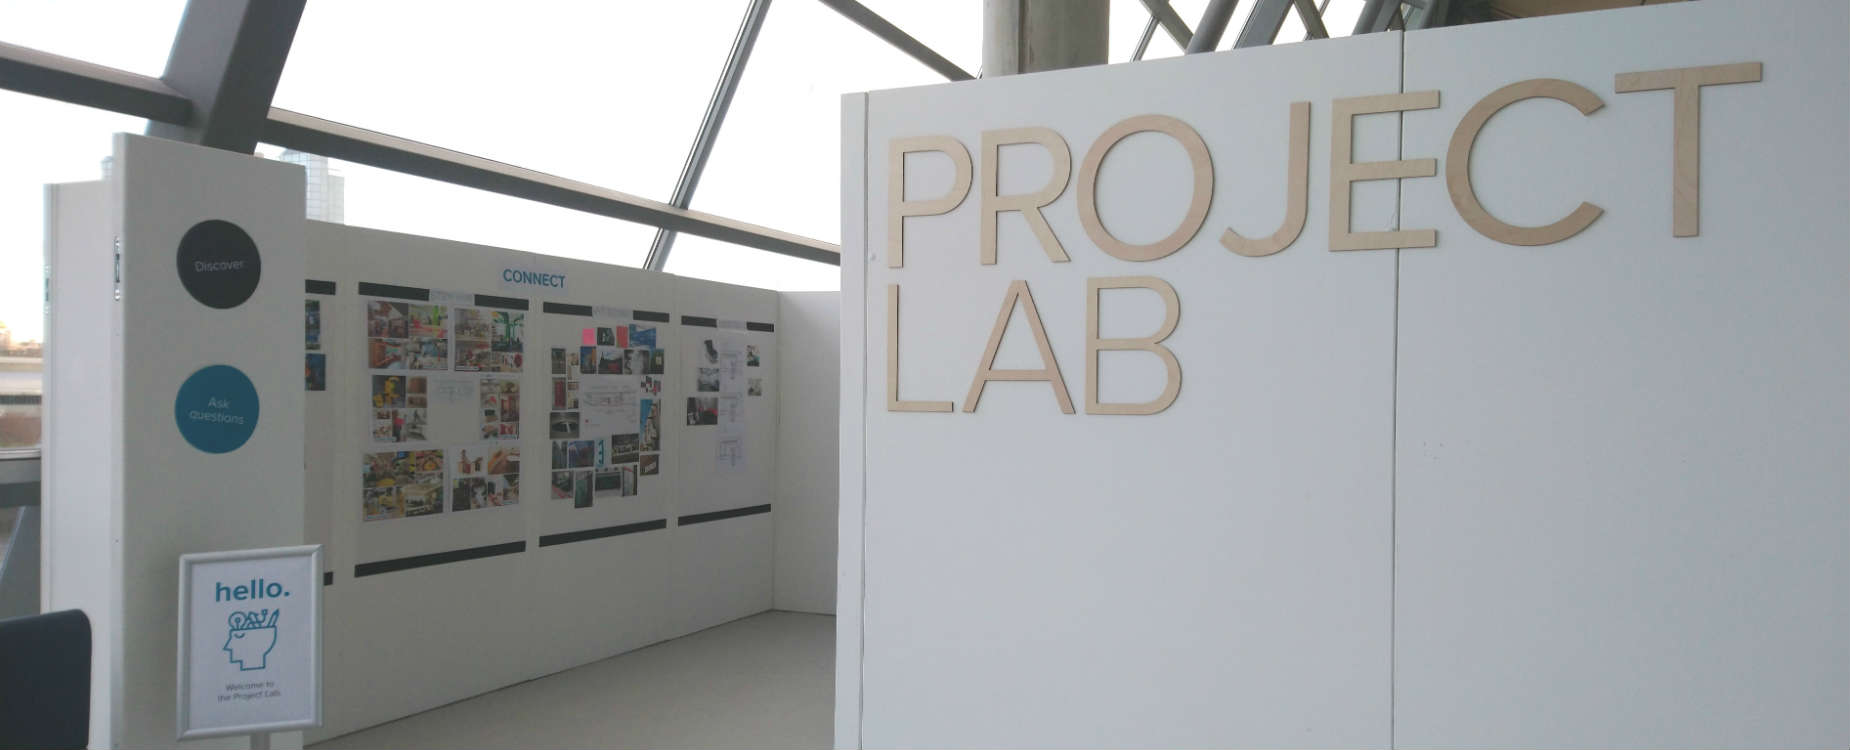 The Project Lab entrance on Floor 2 at GSC